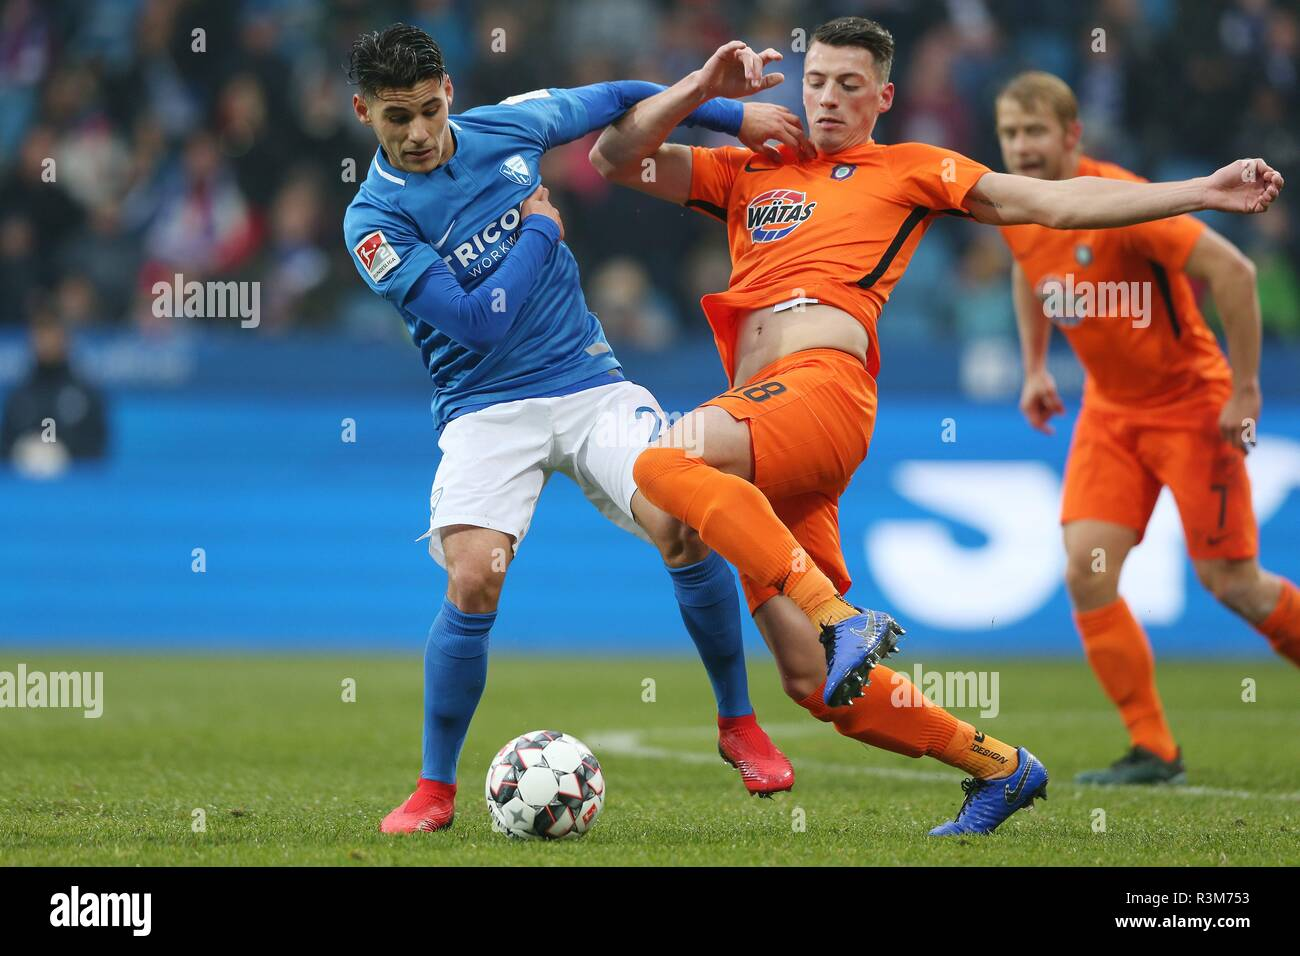 firo: 24.11.2018, football, 2.Bundesliga, season 2018/2019, VfL Bochum - Erzgebirge Aue SAGLAM, Bochum left versus RAPP | usage worldwide - Stock Image